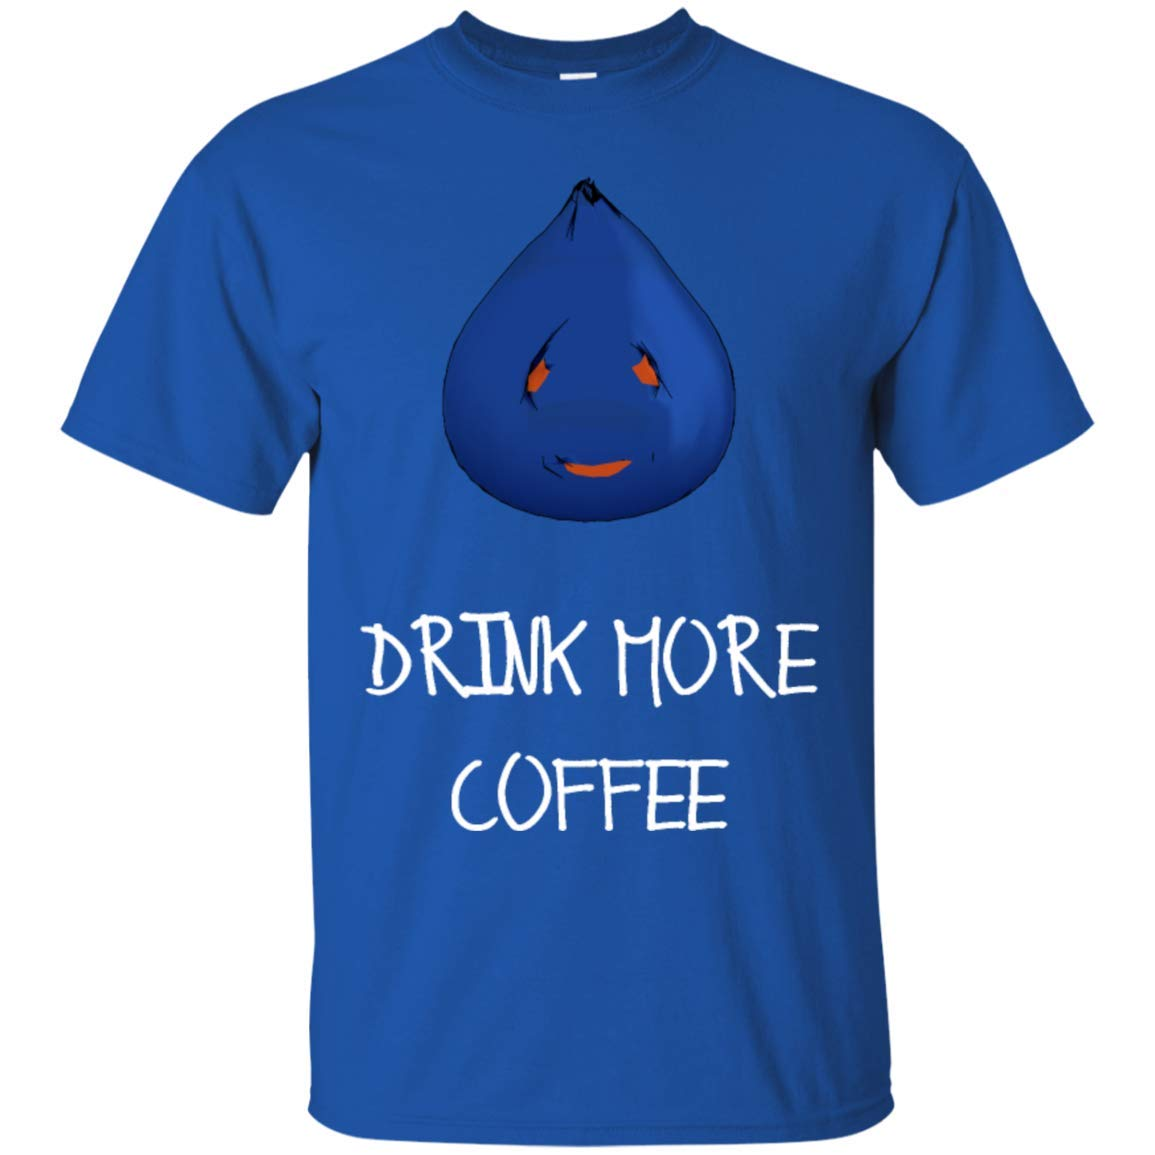 Drink More Coffee Funny Coffee Shirt